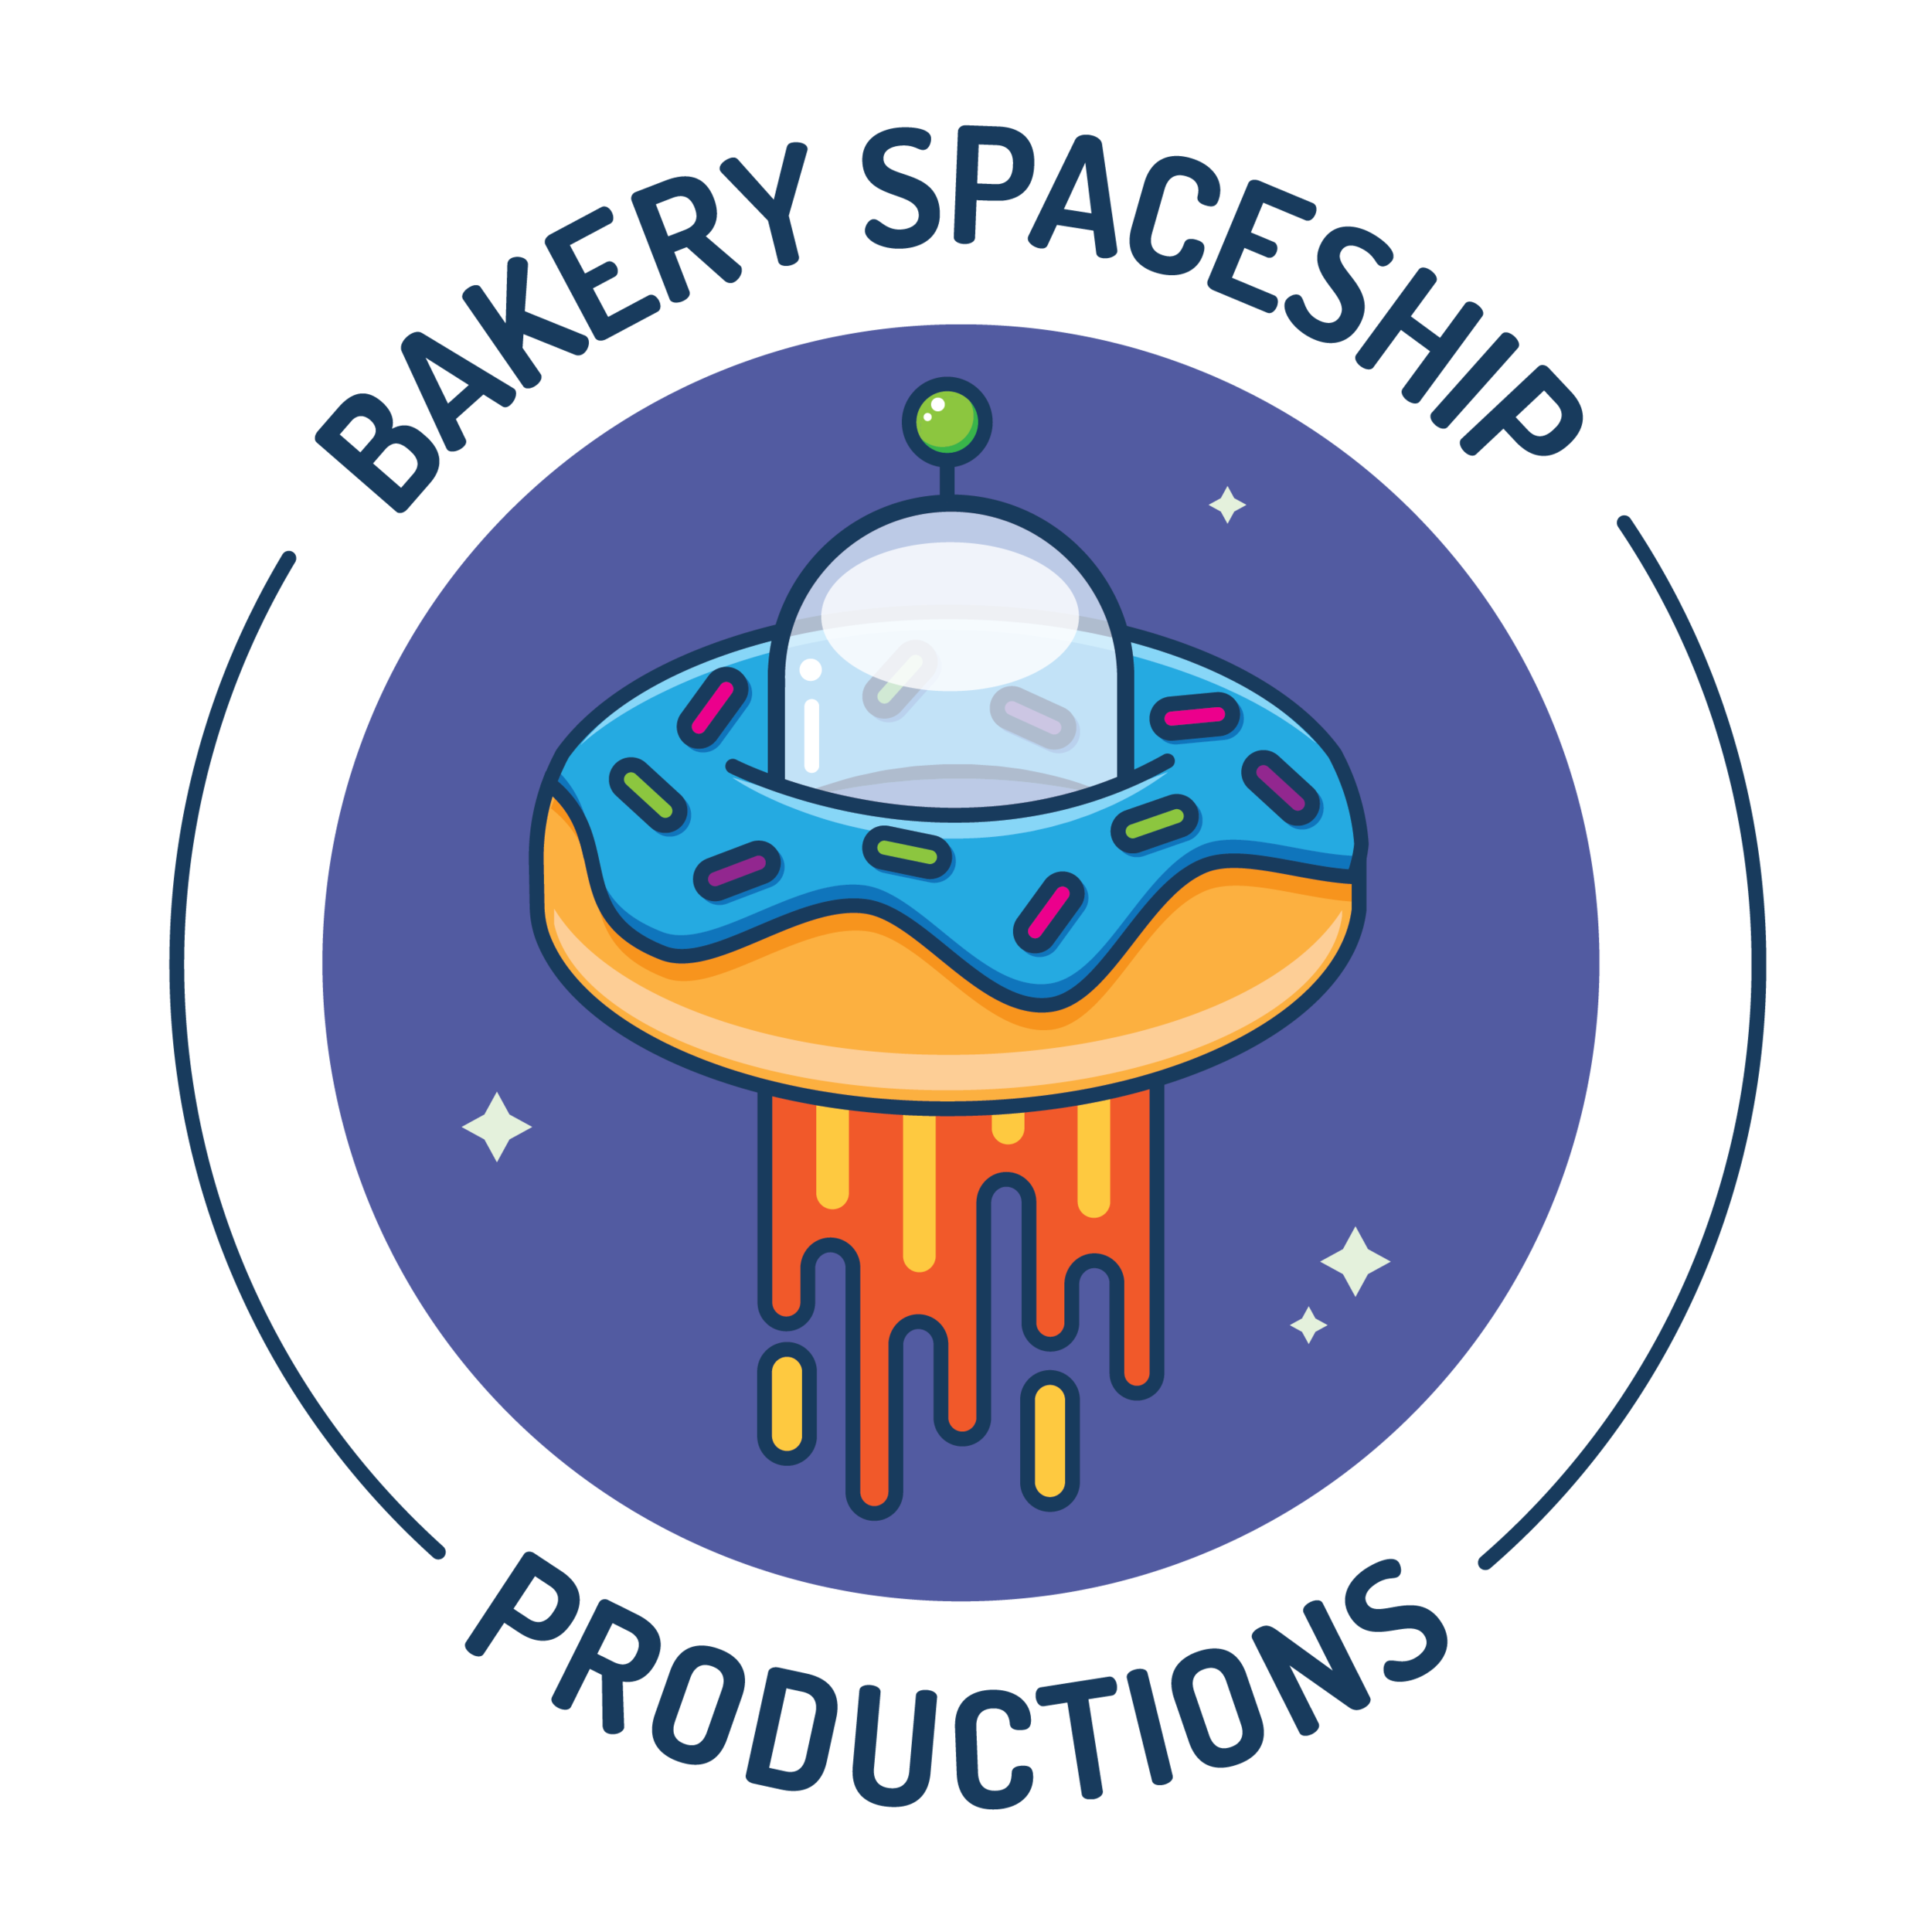 Bakery Spaceship productions - Bakery Spaceship Productions is a video production company founded by Keith Purdie, a videographer who specializes in cinematography and video editing. Creating anything from music videos to commercials, you can check out their work below!